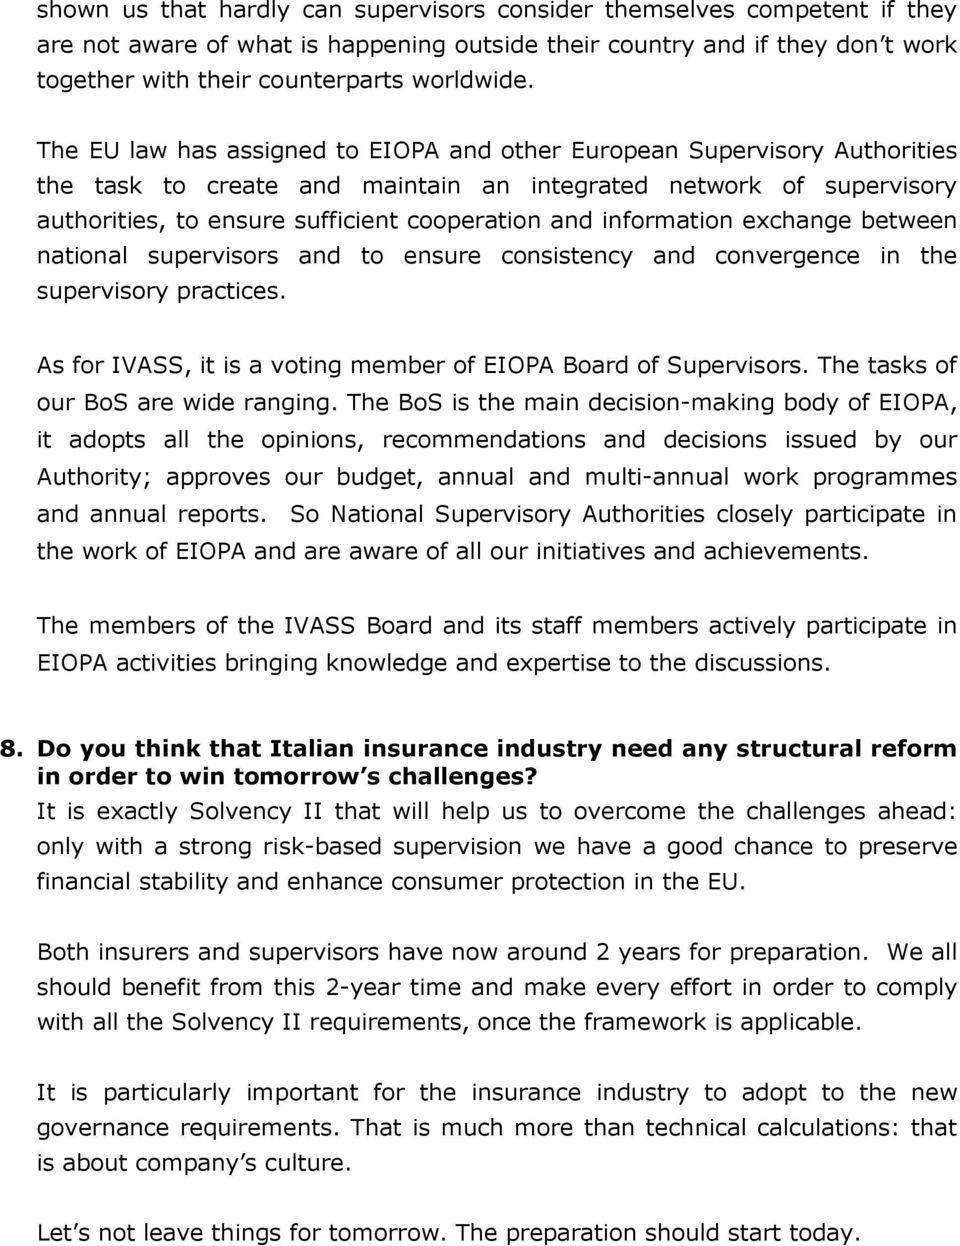 information exchange between national supervisors and to ensure consistency and convergence in the supervisory practices. As for IVASS, it is a voting member of EIOPA Board of Supervisors.